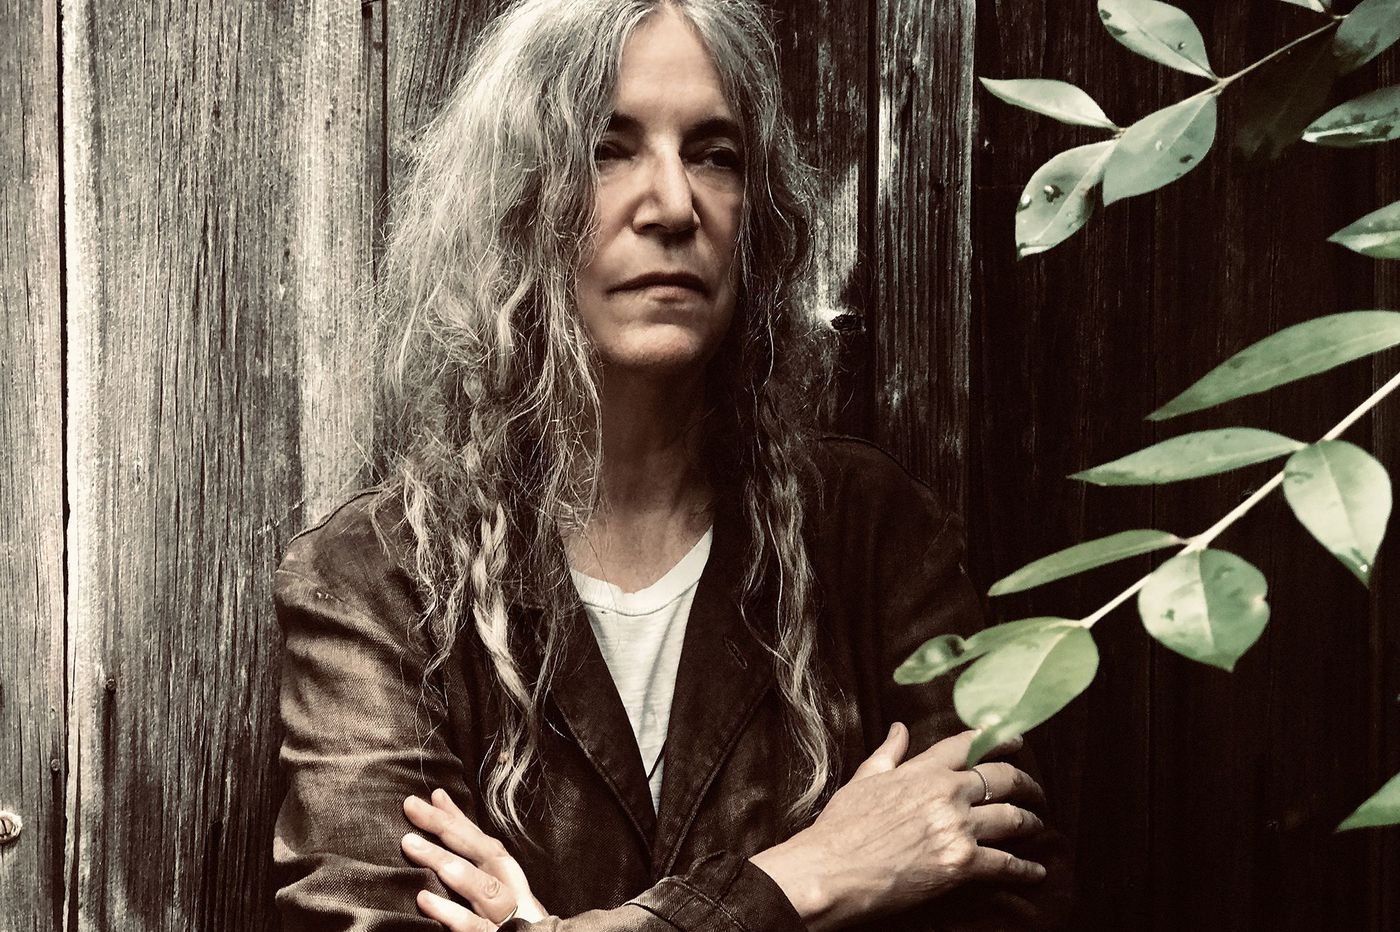 Punk icon Patti Smith surprised a Haddonfield bookshop after she saw her memoir in the window